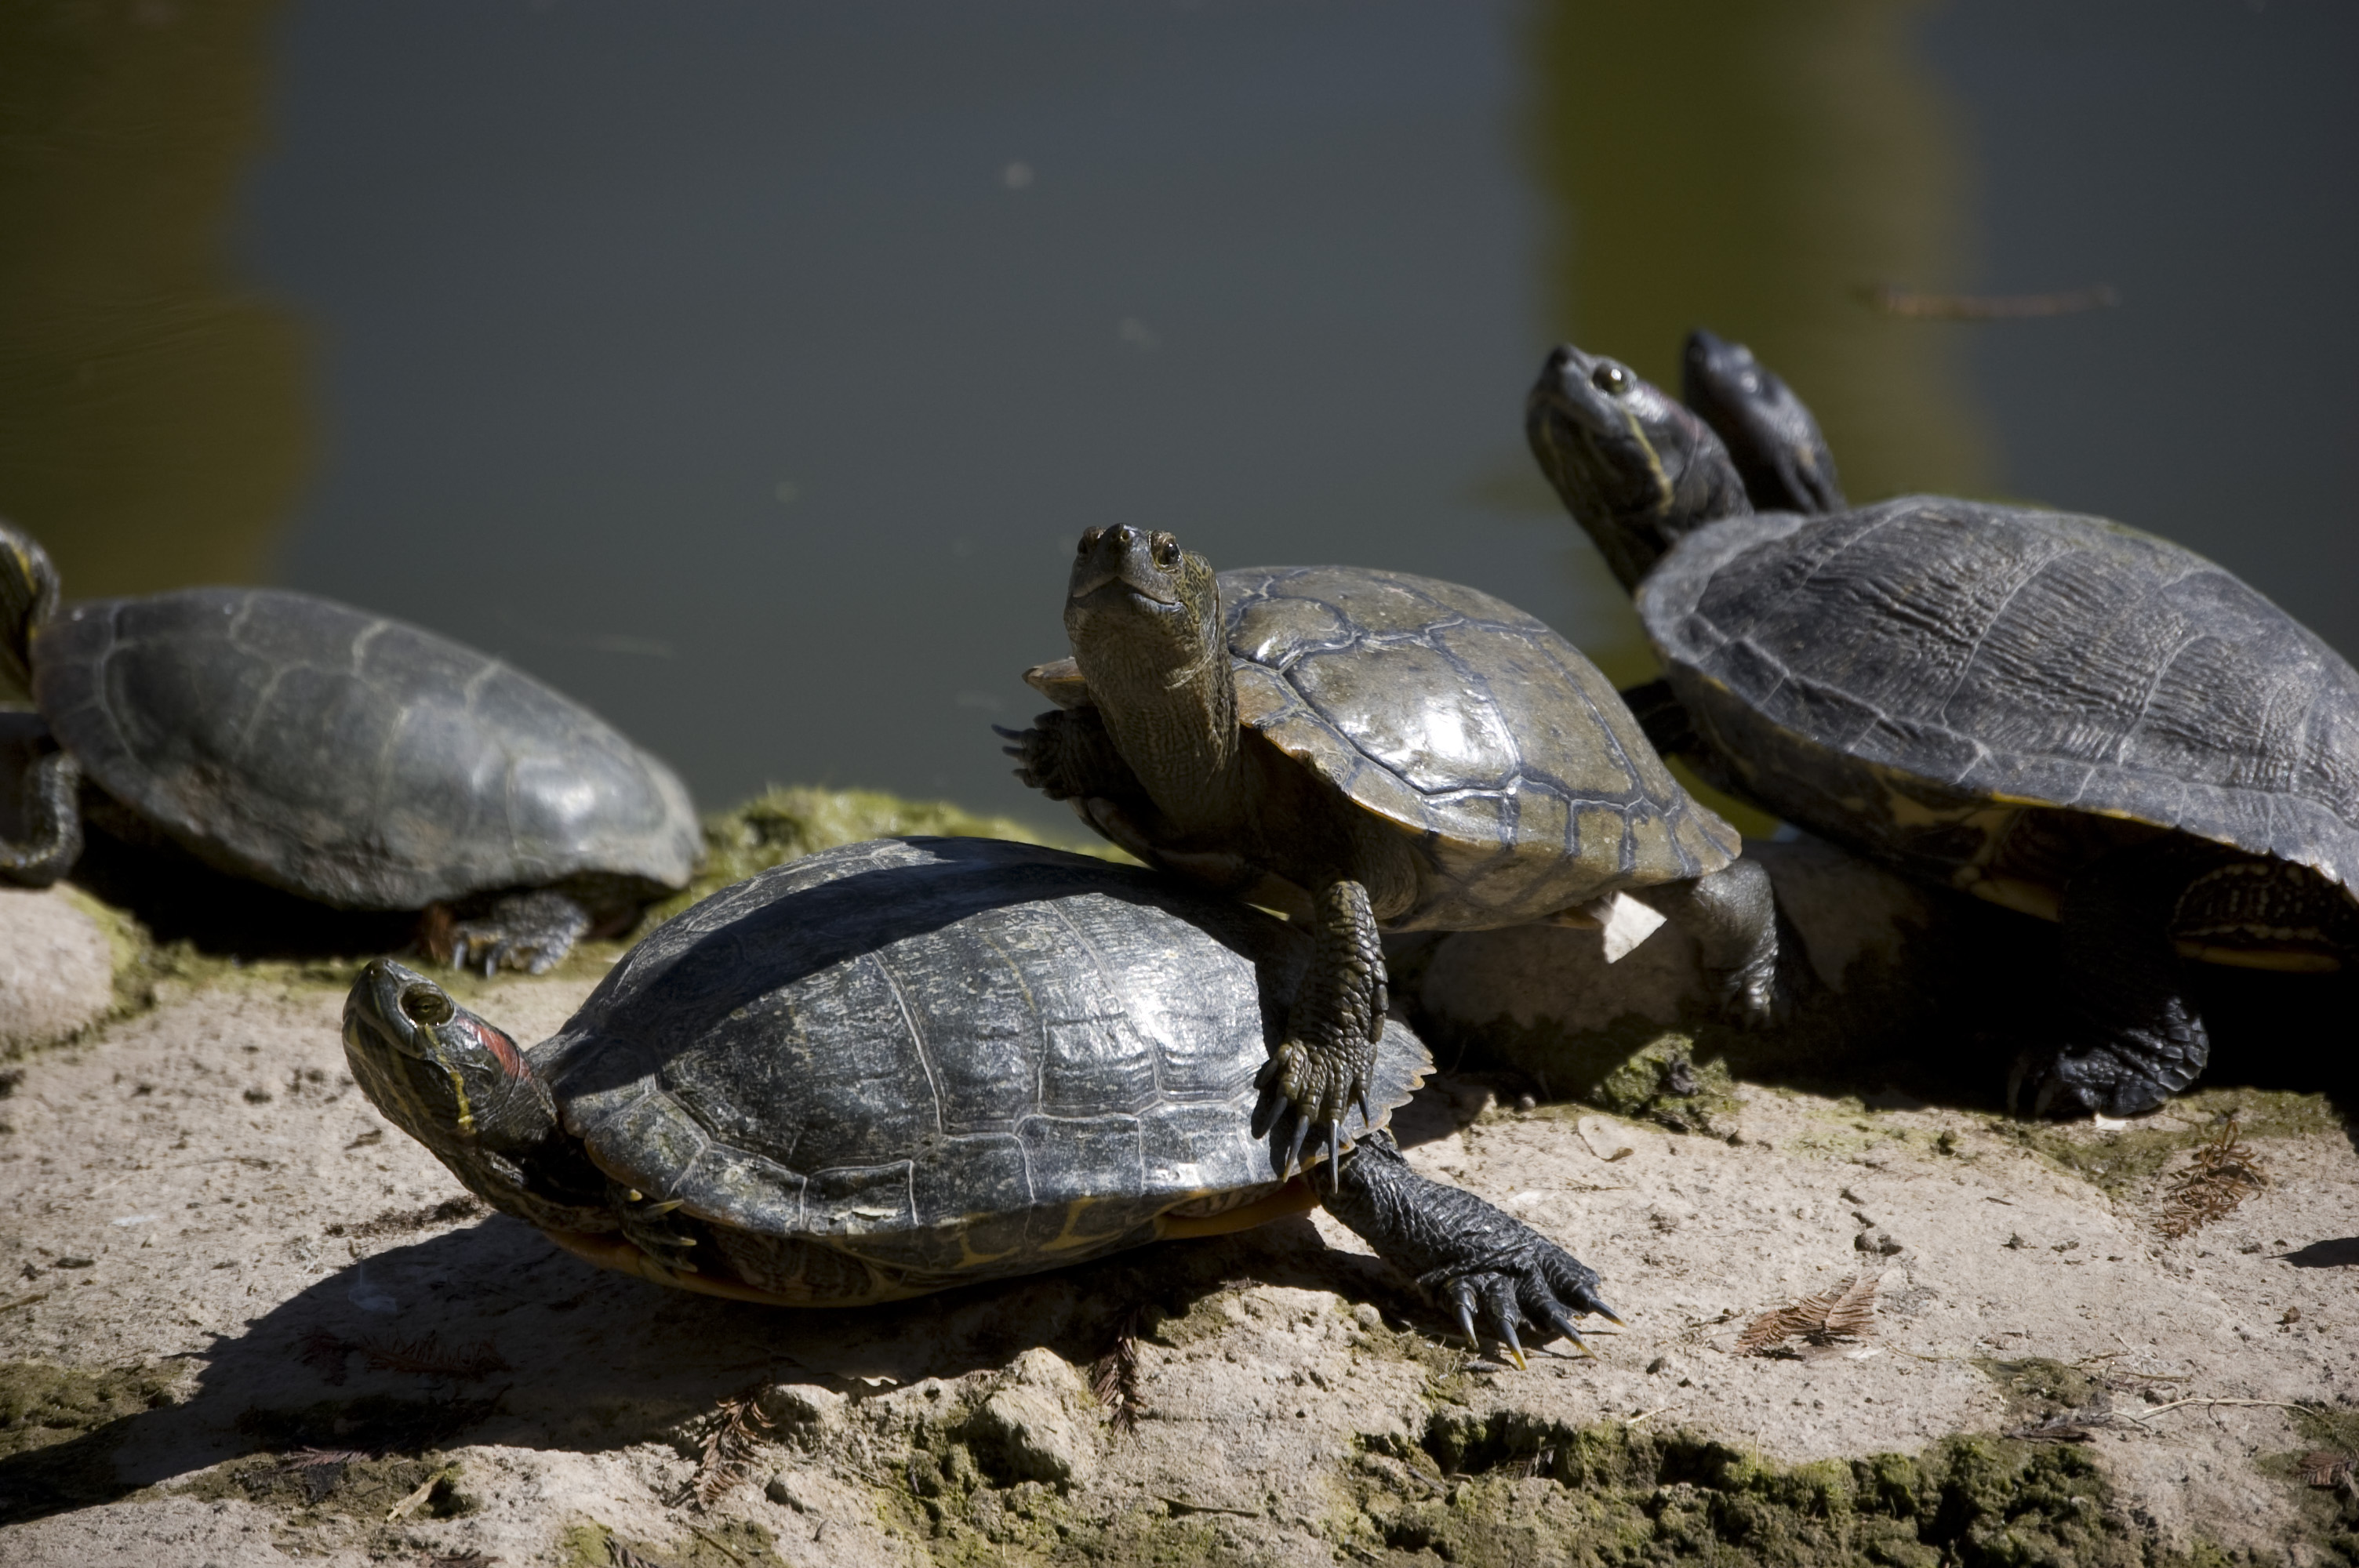 Can Two Painted Turtles Live Together